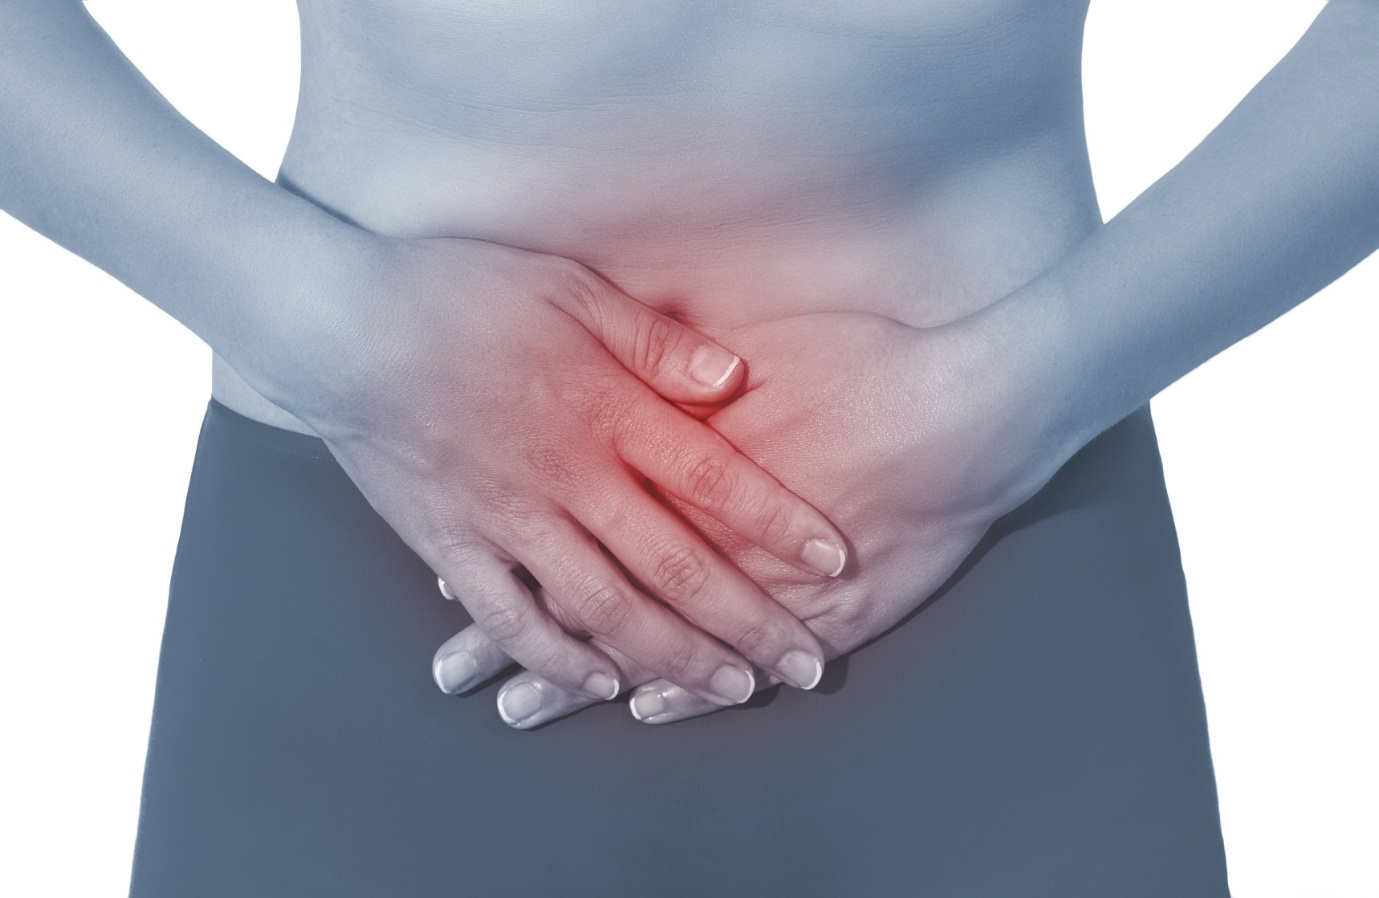 Burning in Lower Abdomen: Causes and Treatment | New Health Advisor